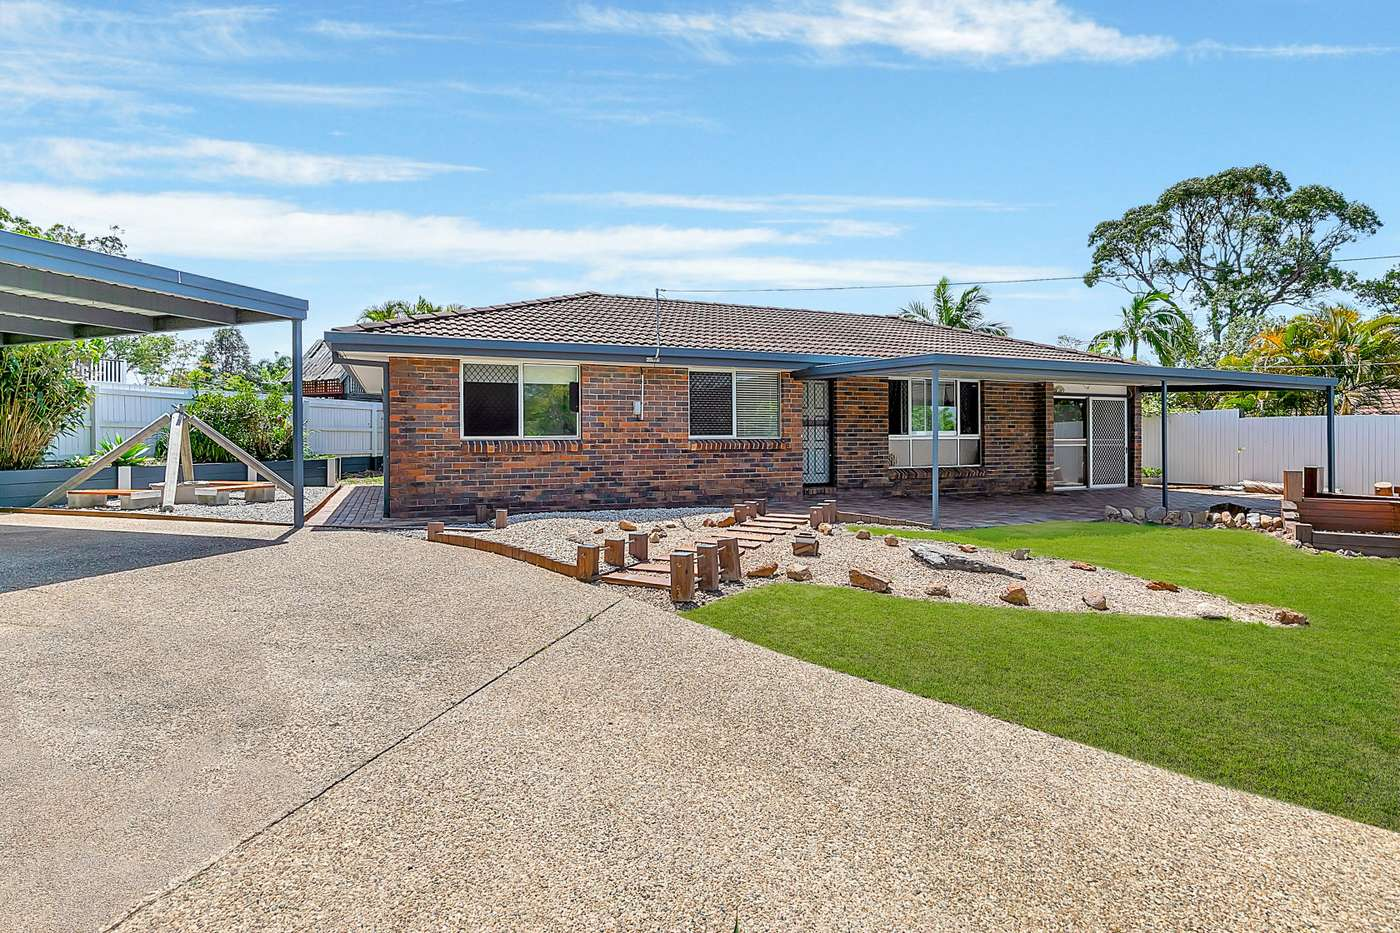 Main view of Homely house listing, 4 Ascot Court, Alexandra Hills, QLD 4161